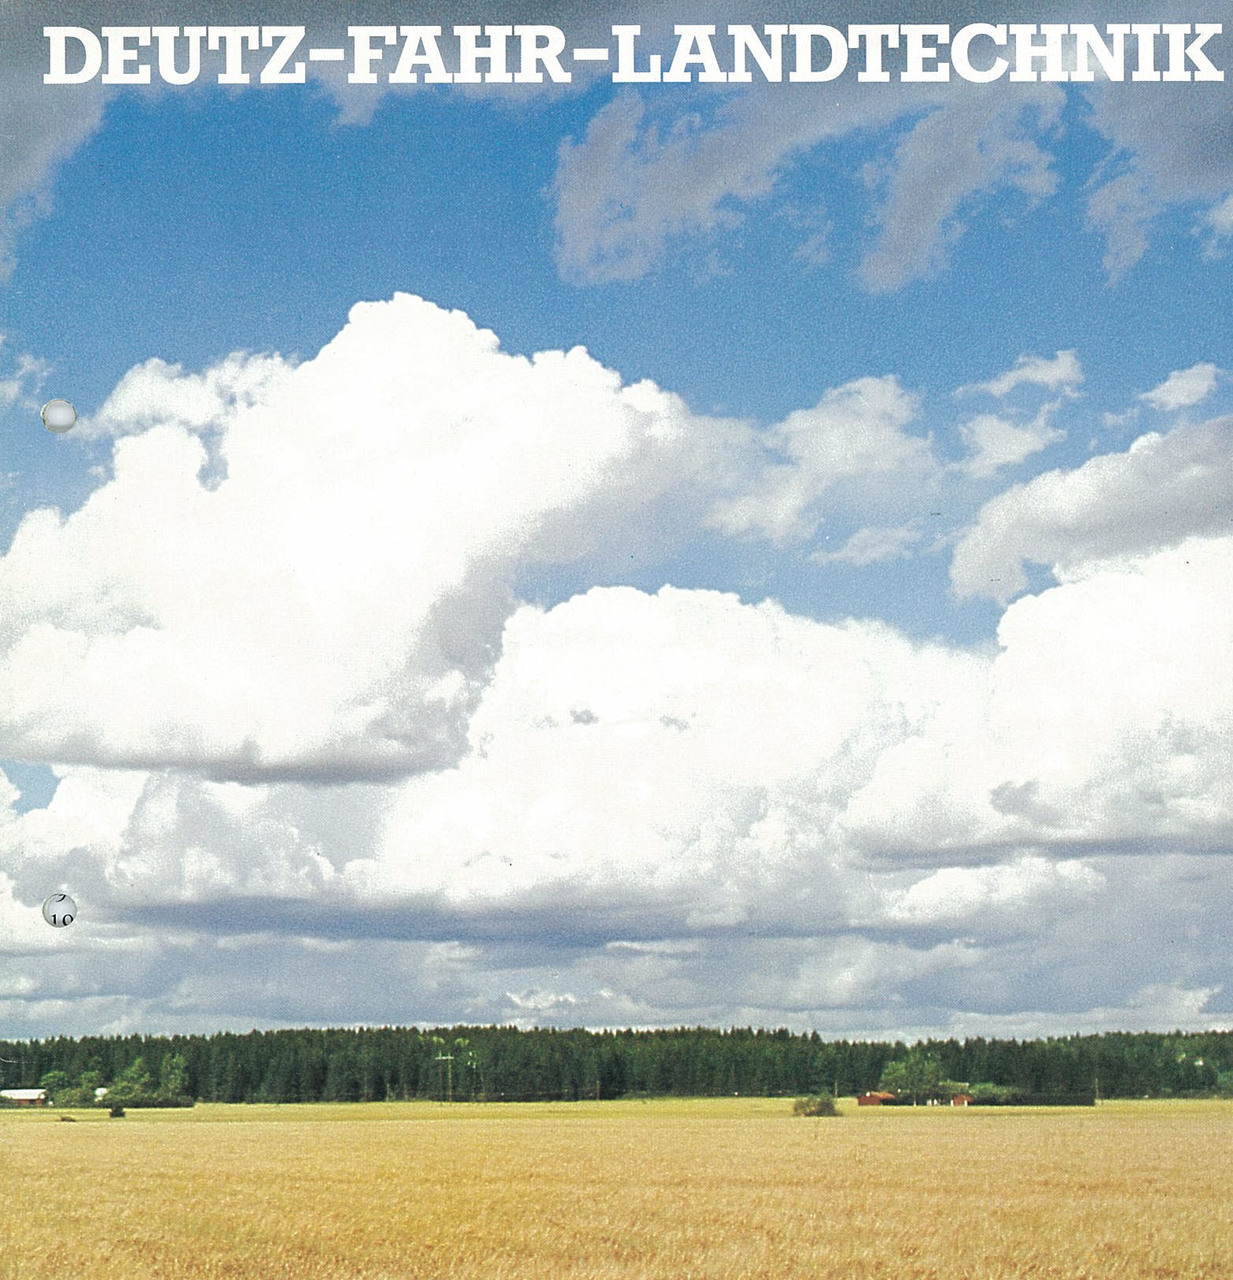 DEUTZ-FAHR-LANDTECHNIK